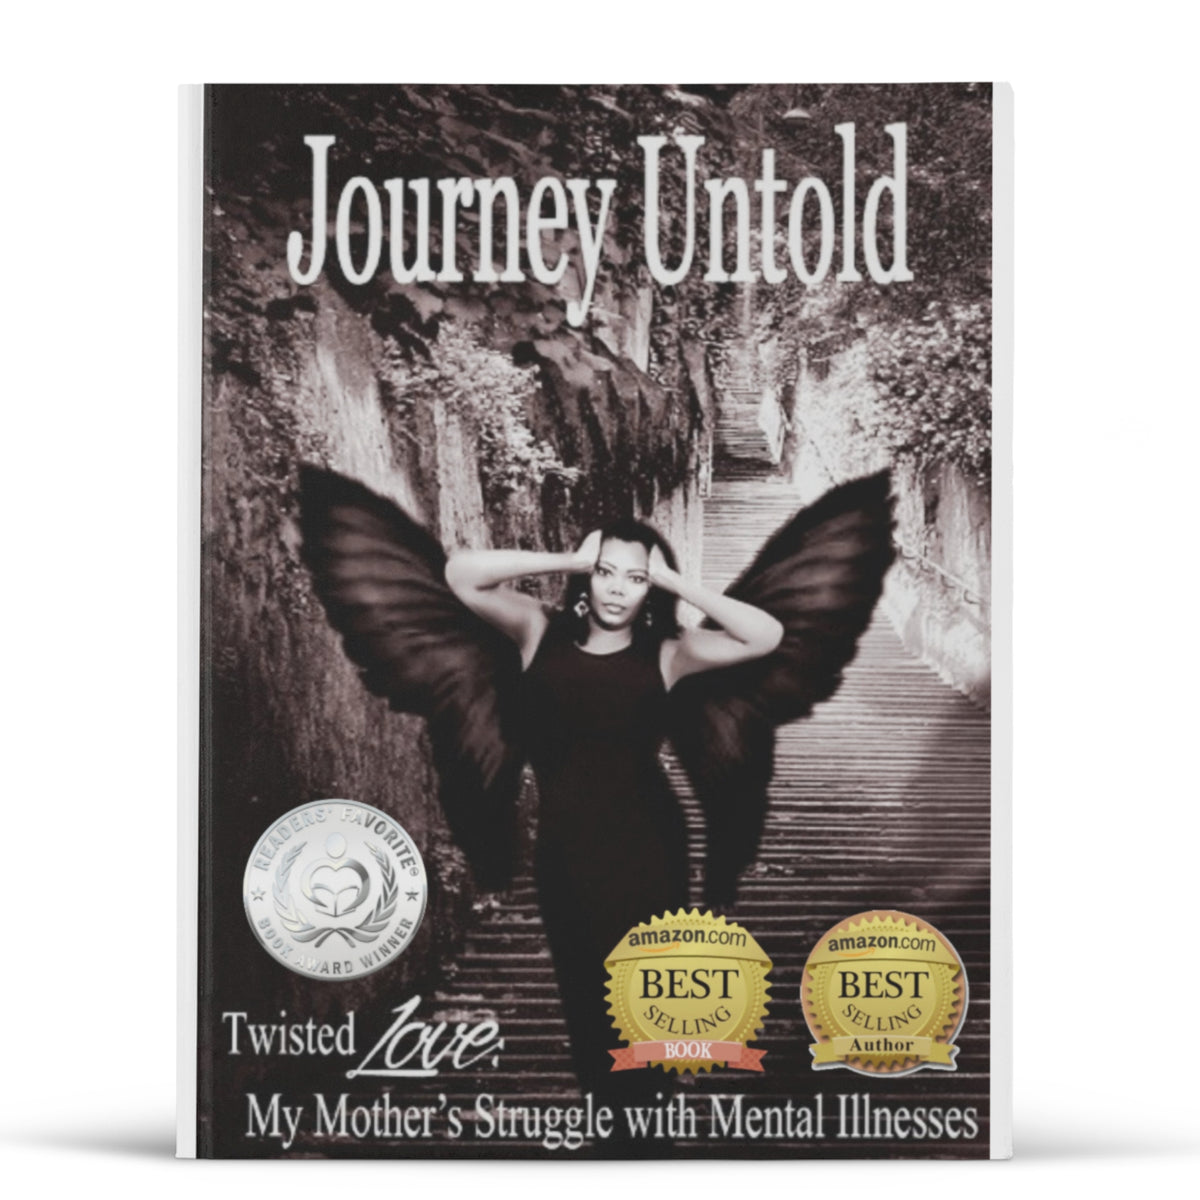 Journey Untold ~ Twisted Love, My Mother's Struggle with Mental Illnesses